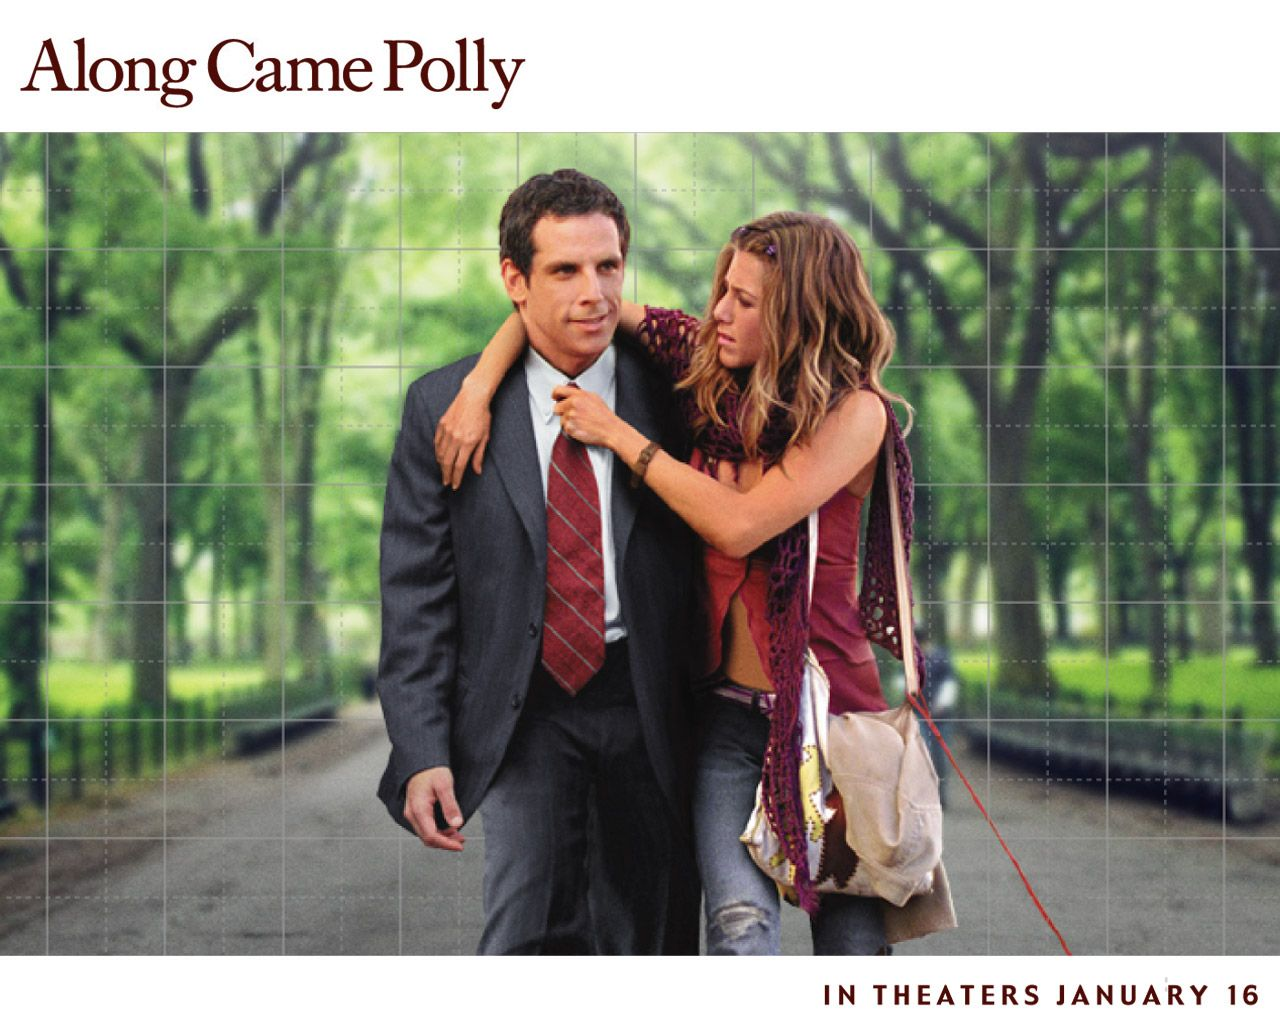 Watch Streaming Hd Along Came Polly Starring Ben Stiller Jennifer Aniston Debra Messing Philip Seymour Hoffman A Buttoned Up Newlywed Finds His Too Organiz